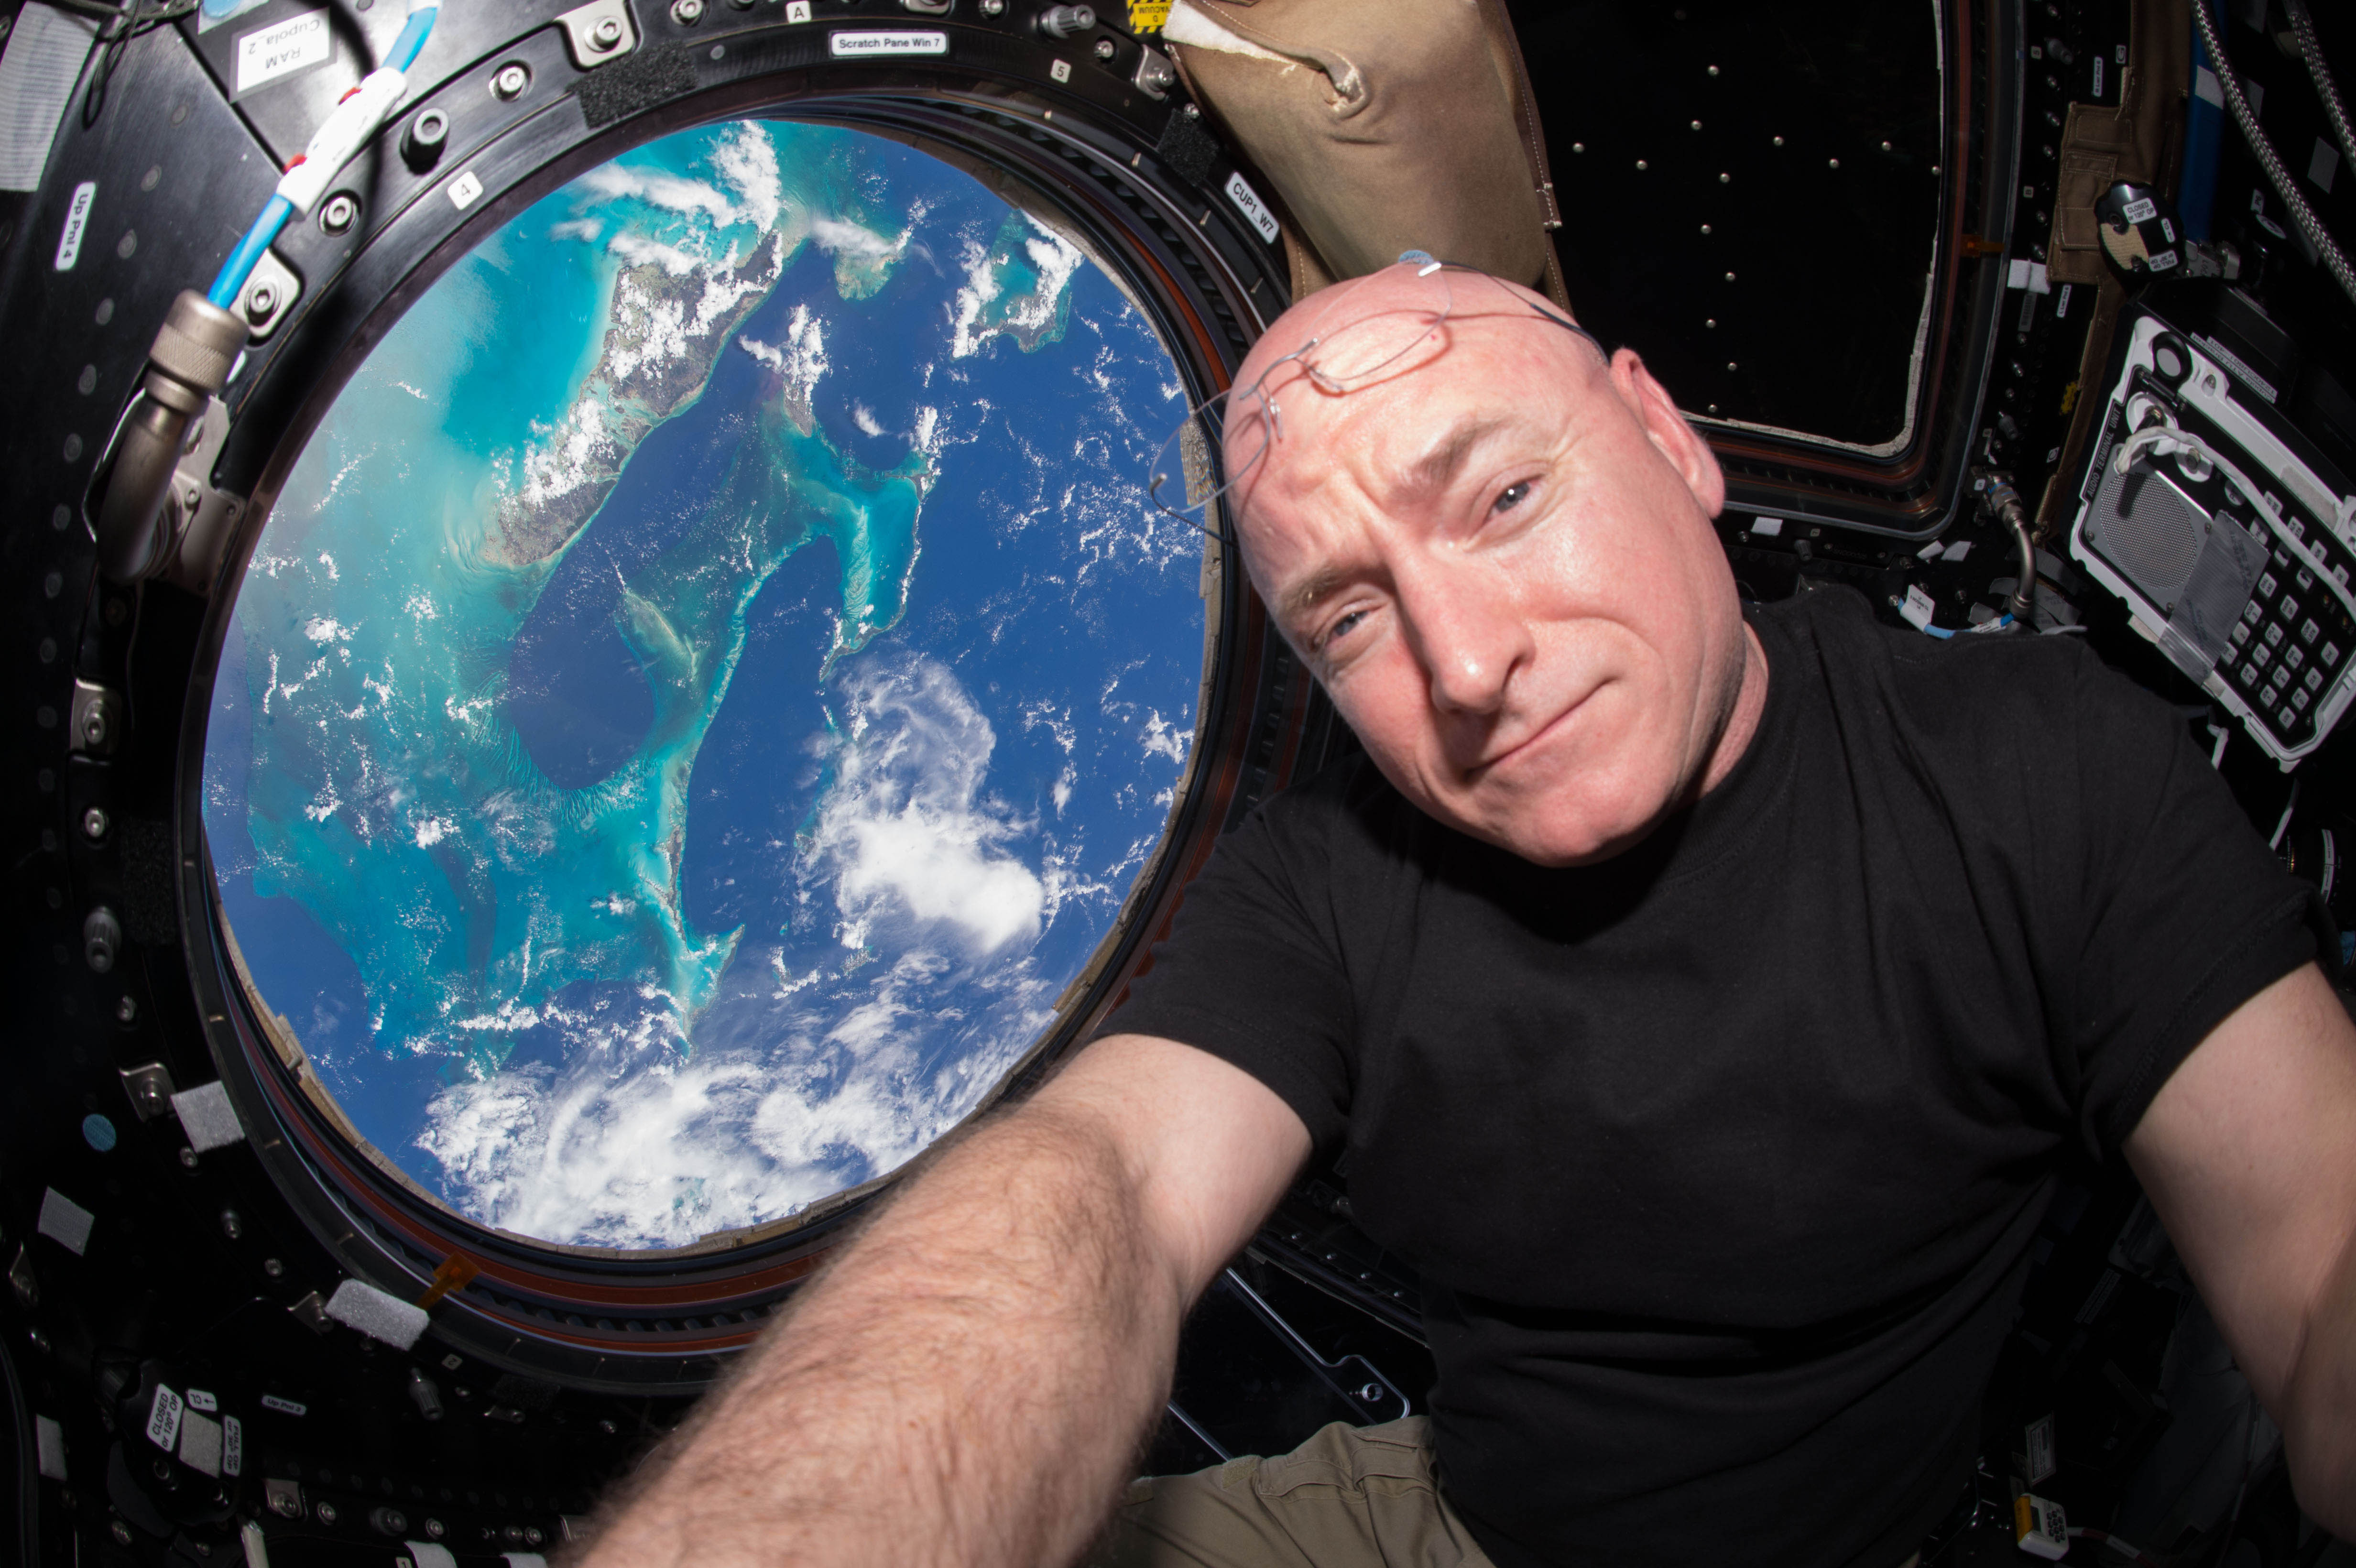 NASA, astronaut Scott Kelly poses for a selfie photo in the  Cupola  of the International Space Station on Oct. 16, 2015.